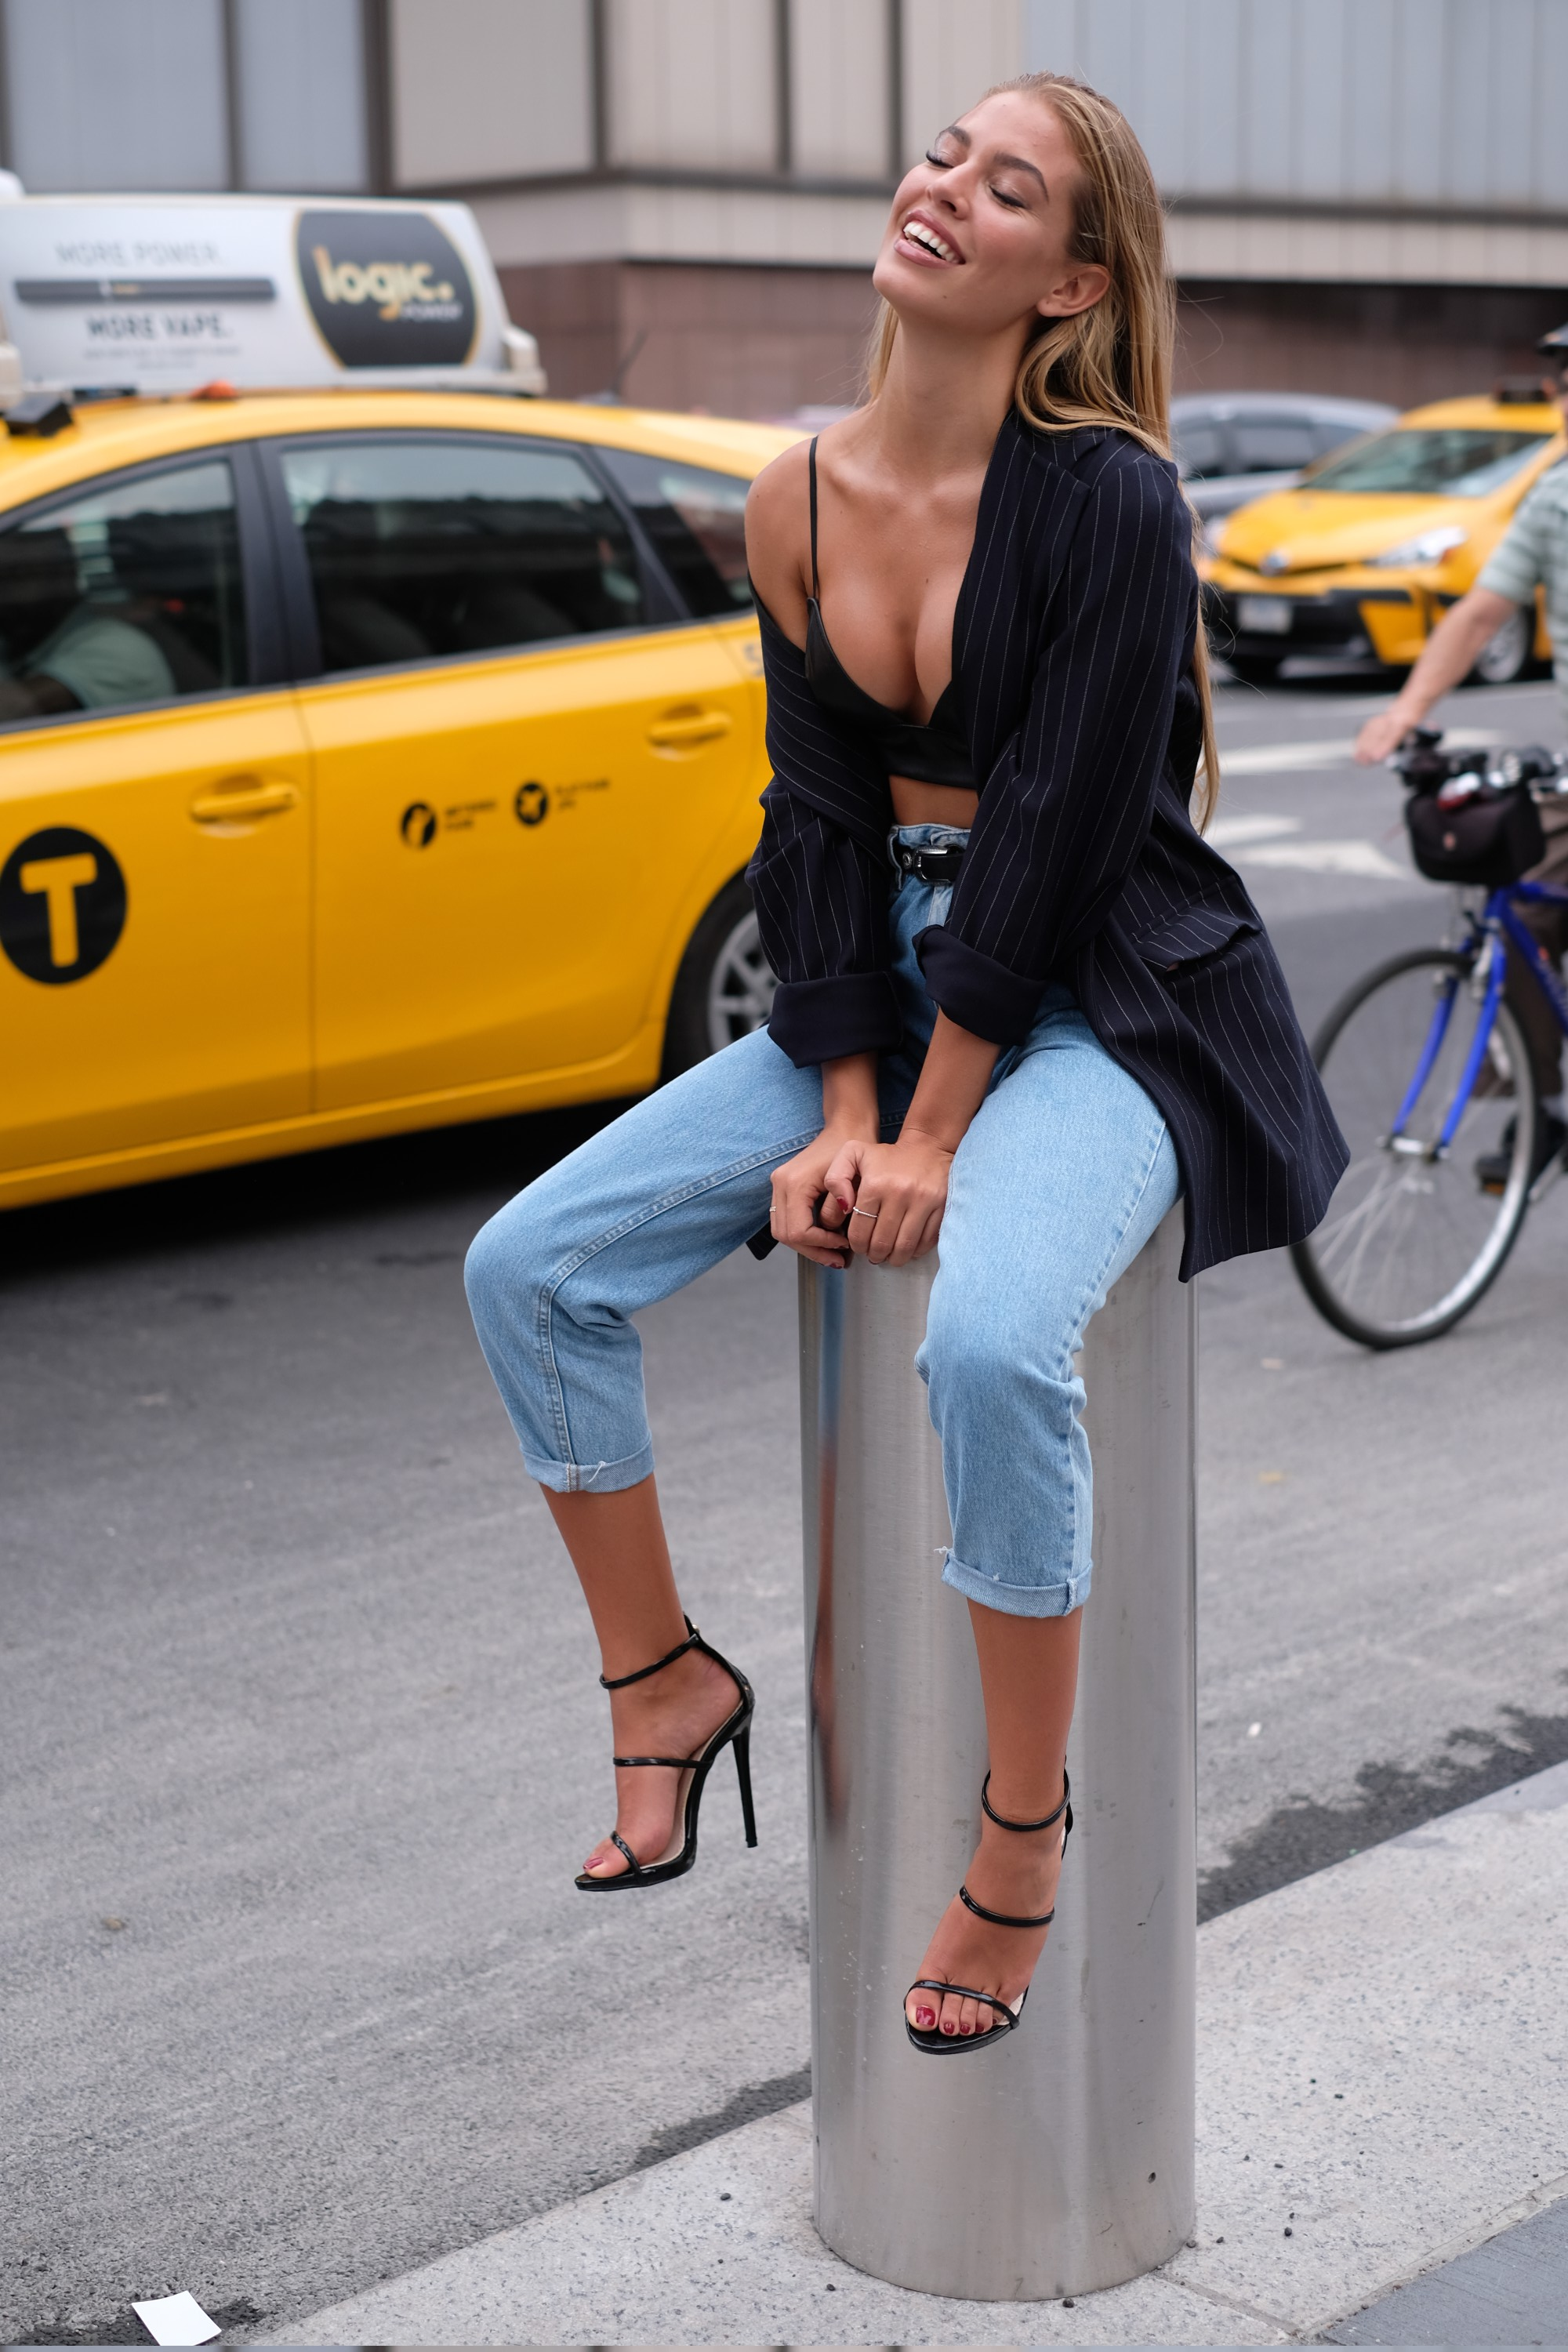 low cut top and taxi